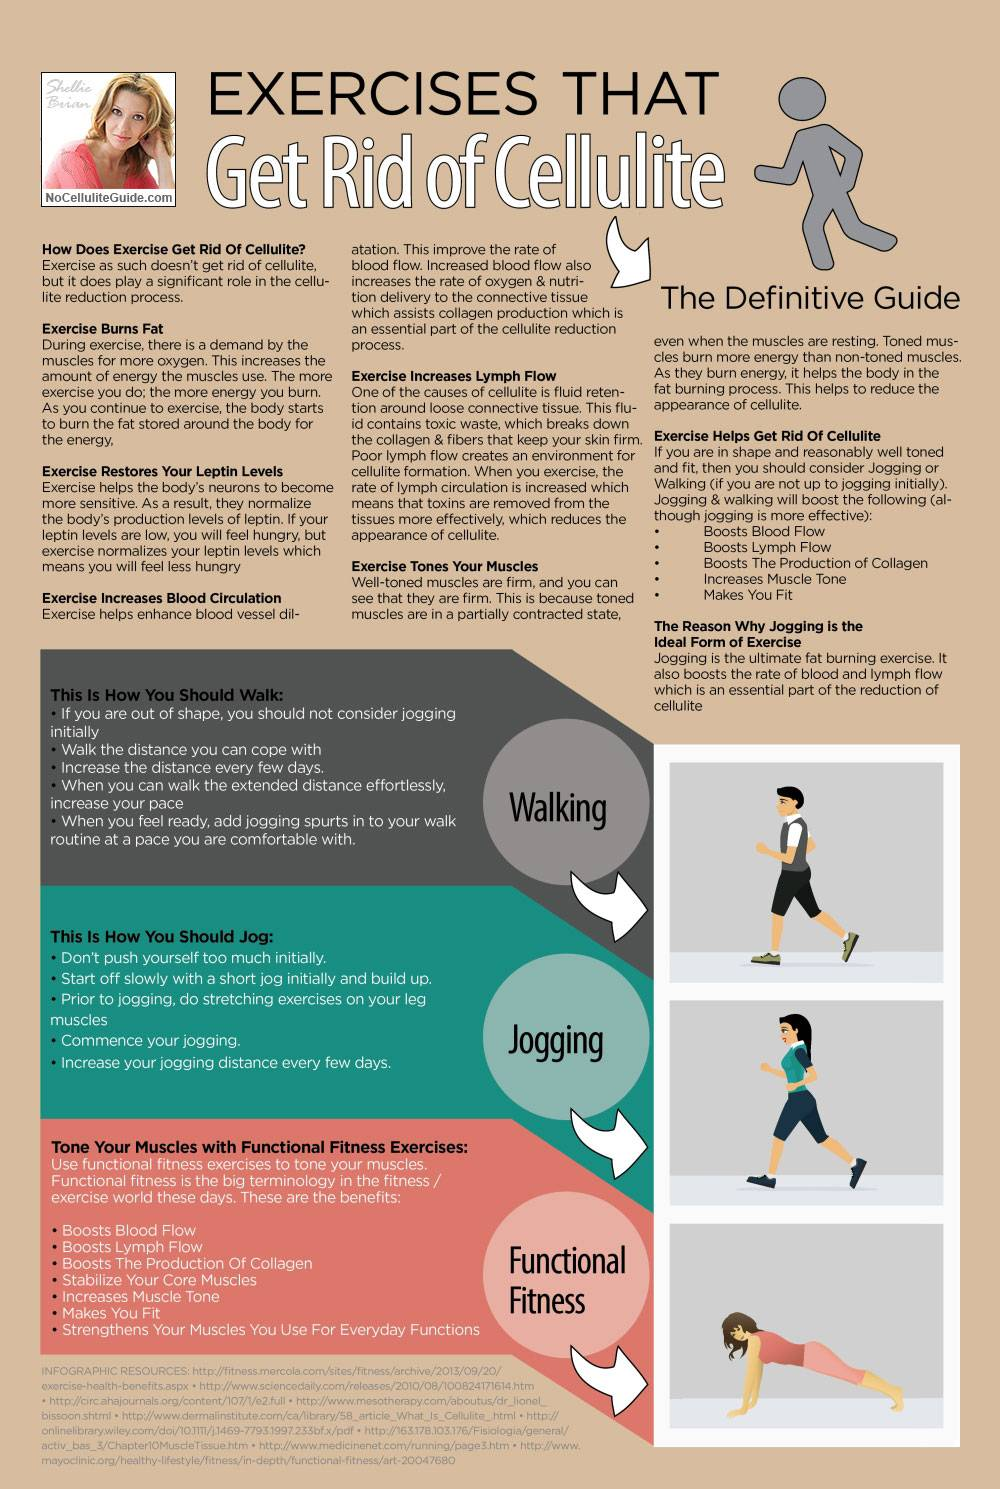 Exercises that Gets Rid of Cellulite - The Definitive Guide (Infographic)